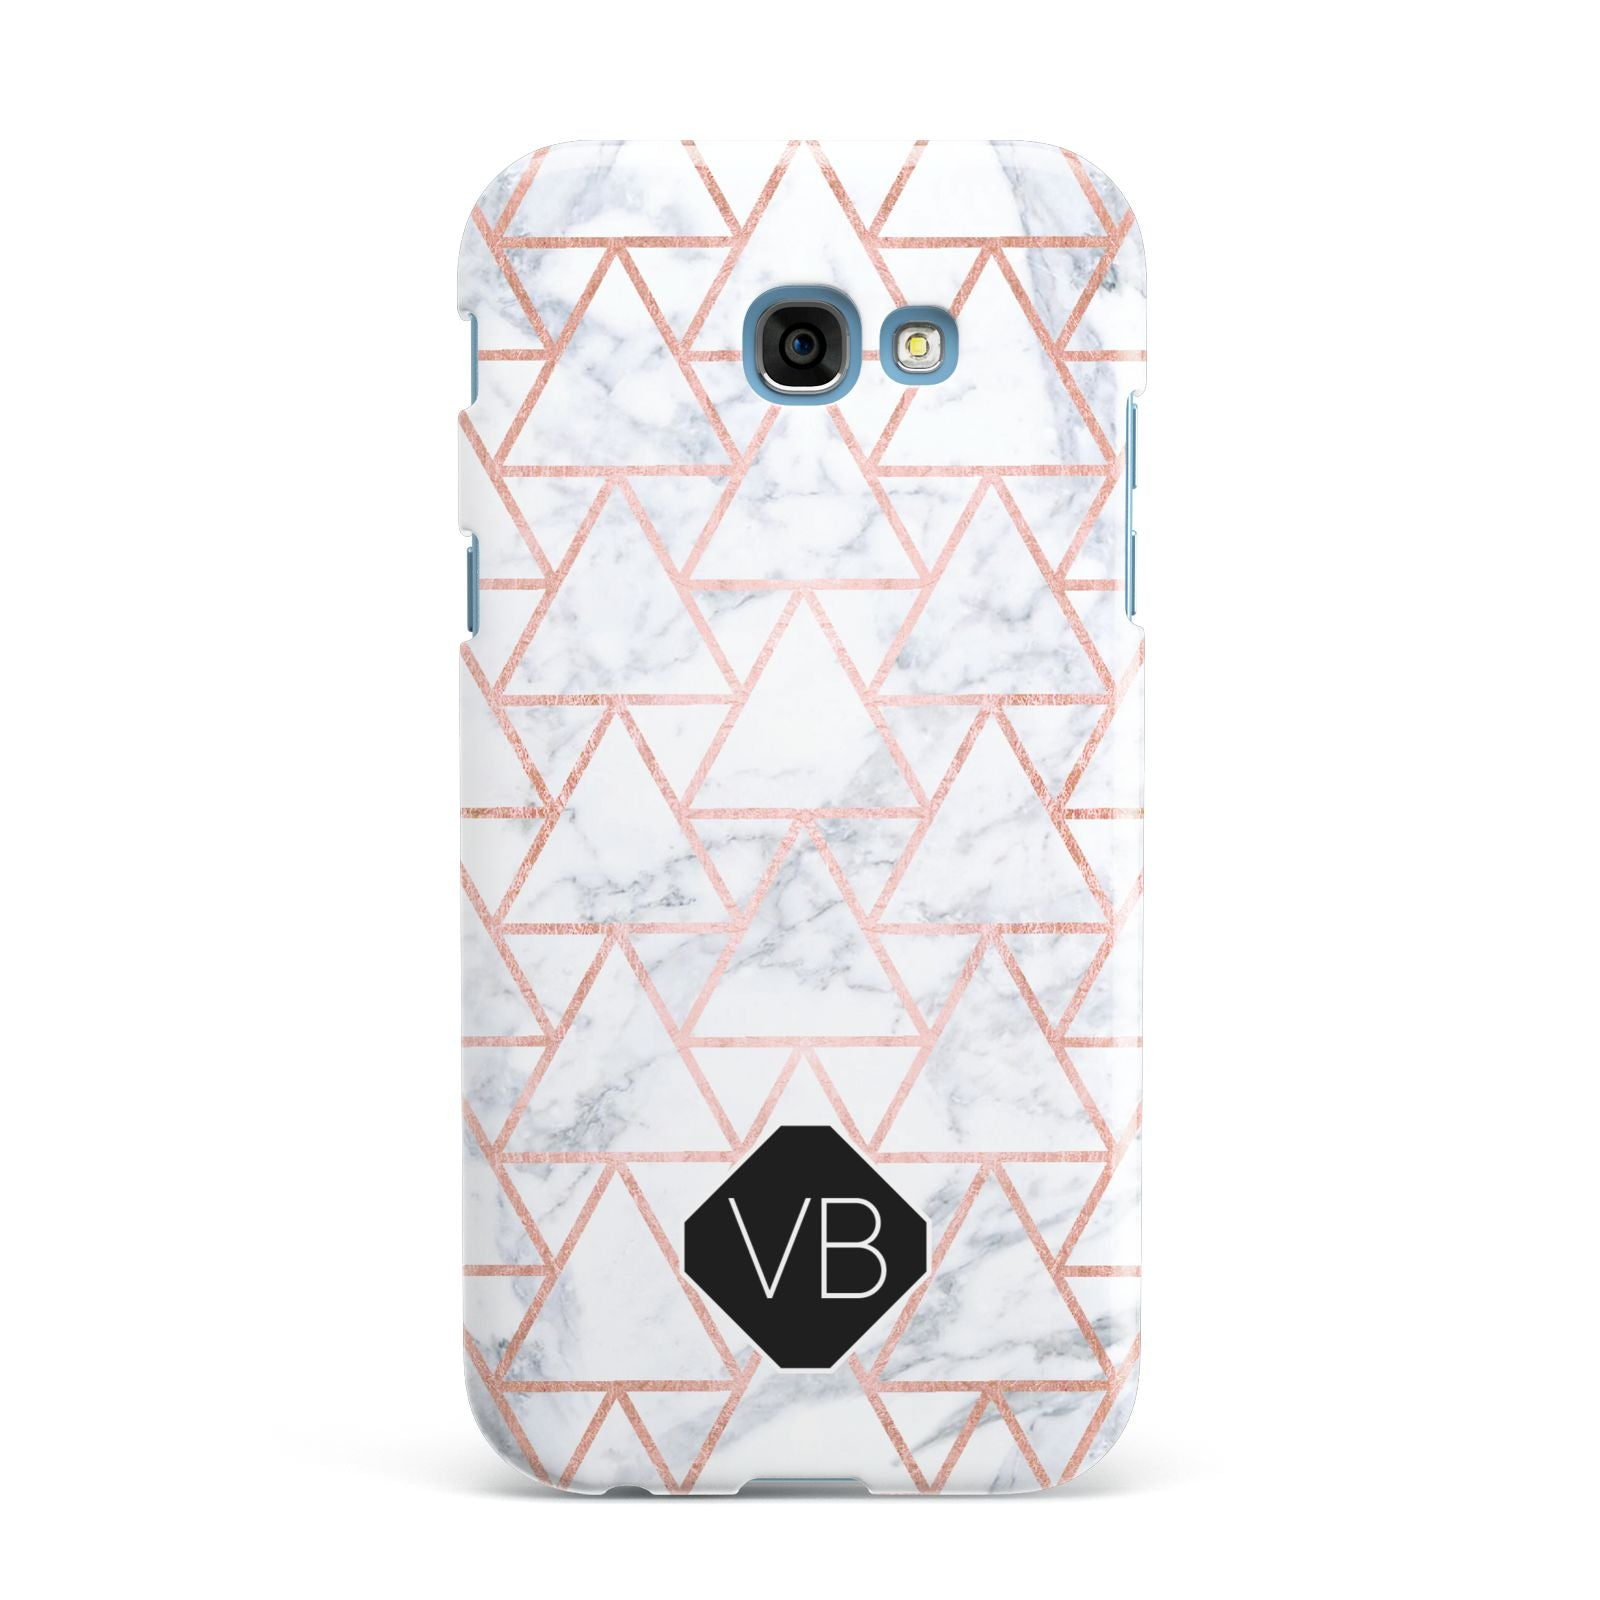 Personalised Rose Gold Grey Marble Hexagon Samsung Galaxy A7 2017 Case